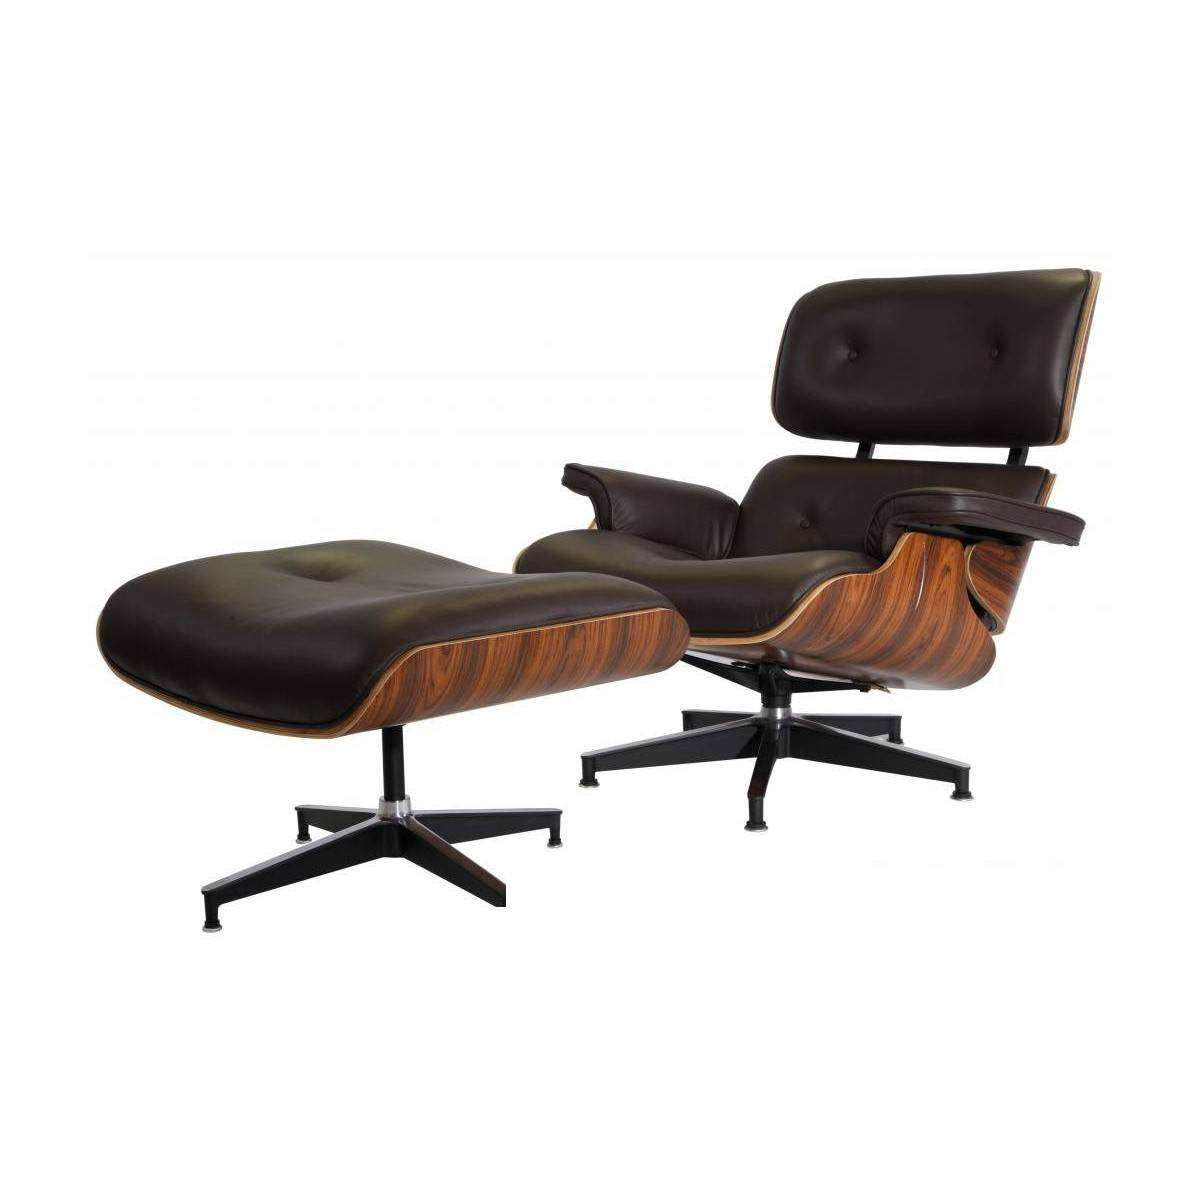 Reproduction Eames Chair Eames Chair Replica Uk